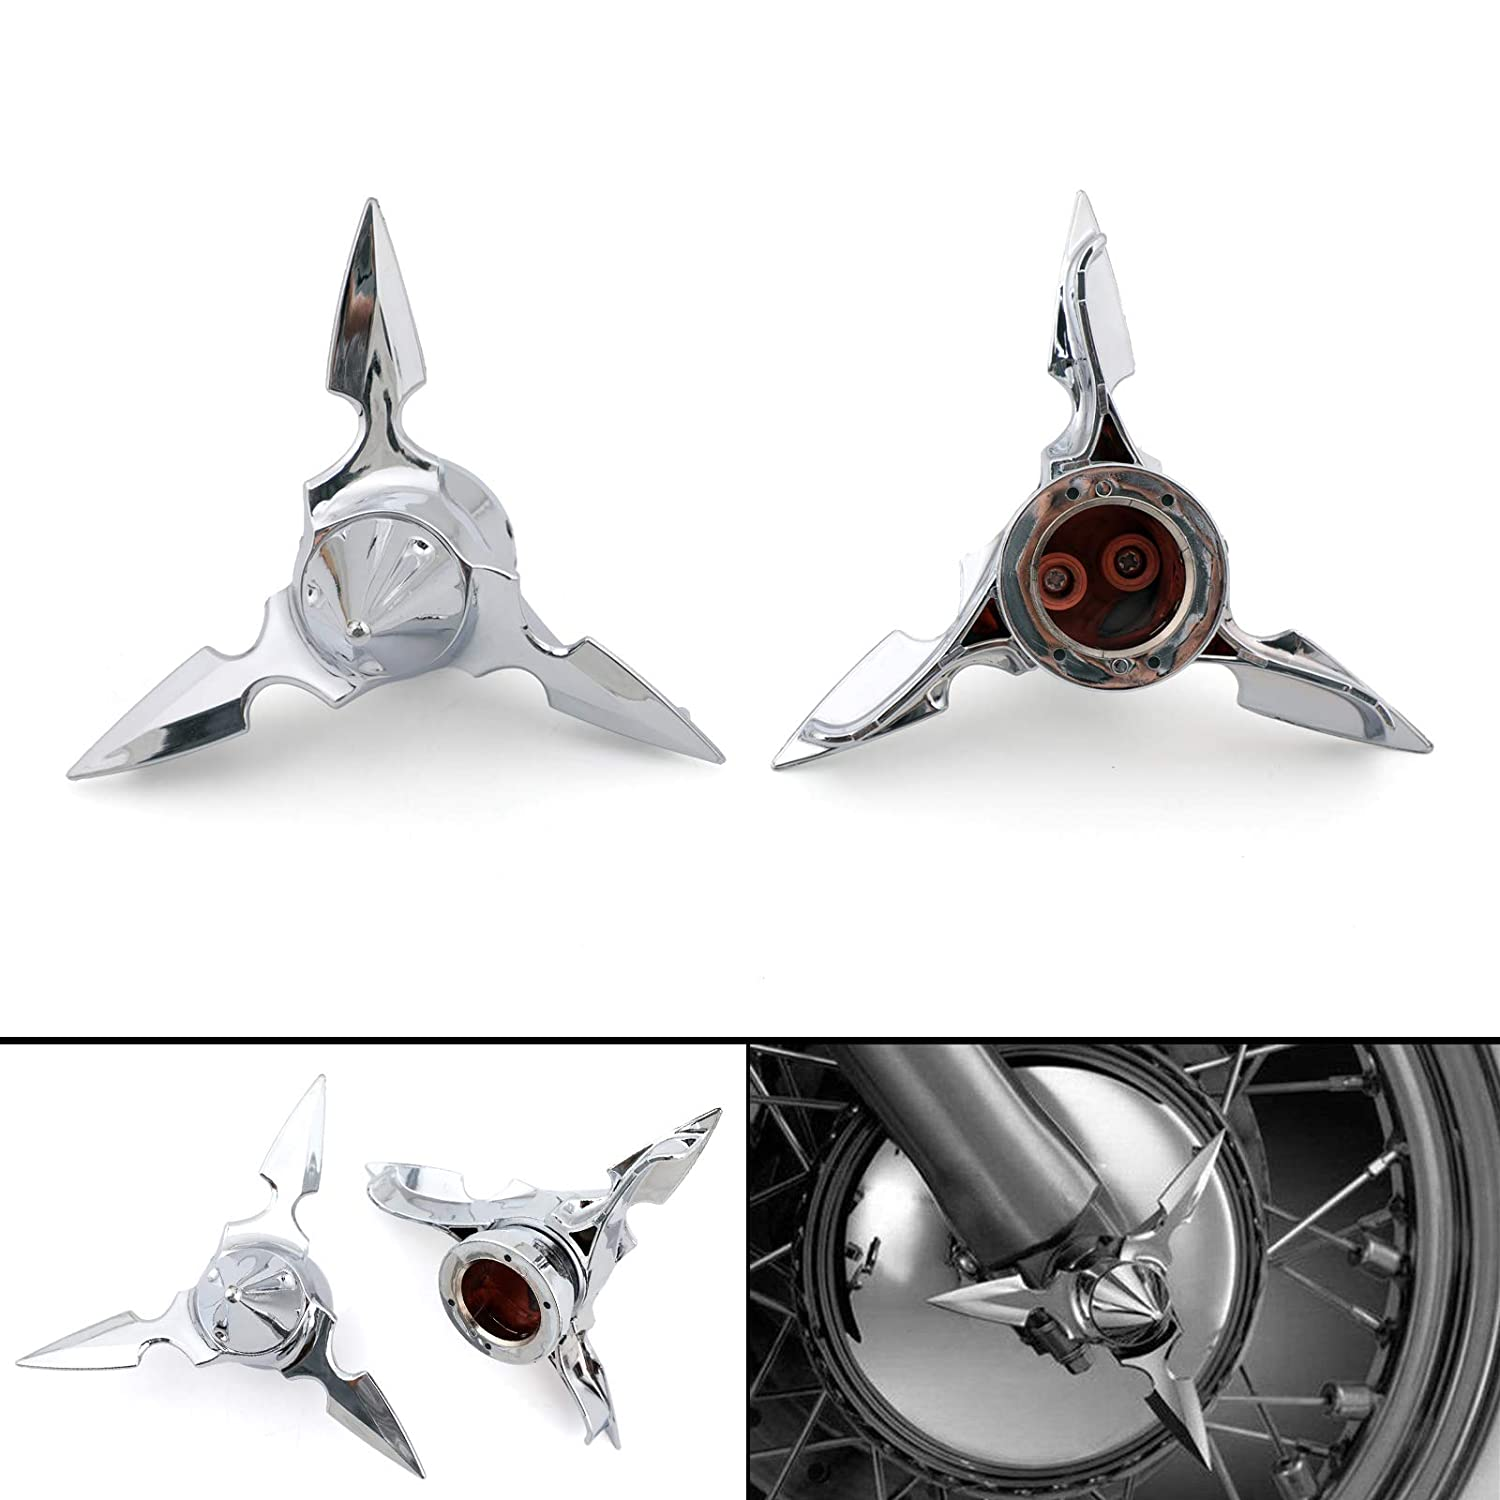 Artudatech Chrome Spun Blade Spinning Front Axle Cap Nut Cover For Harley Softail Touring